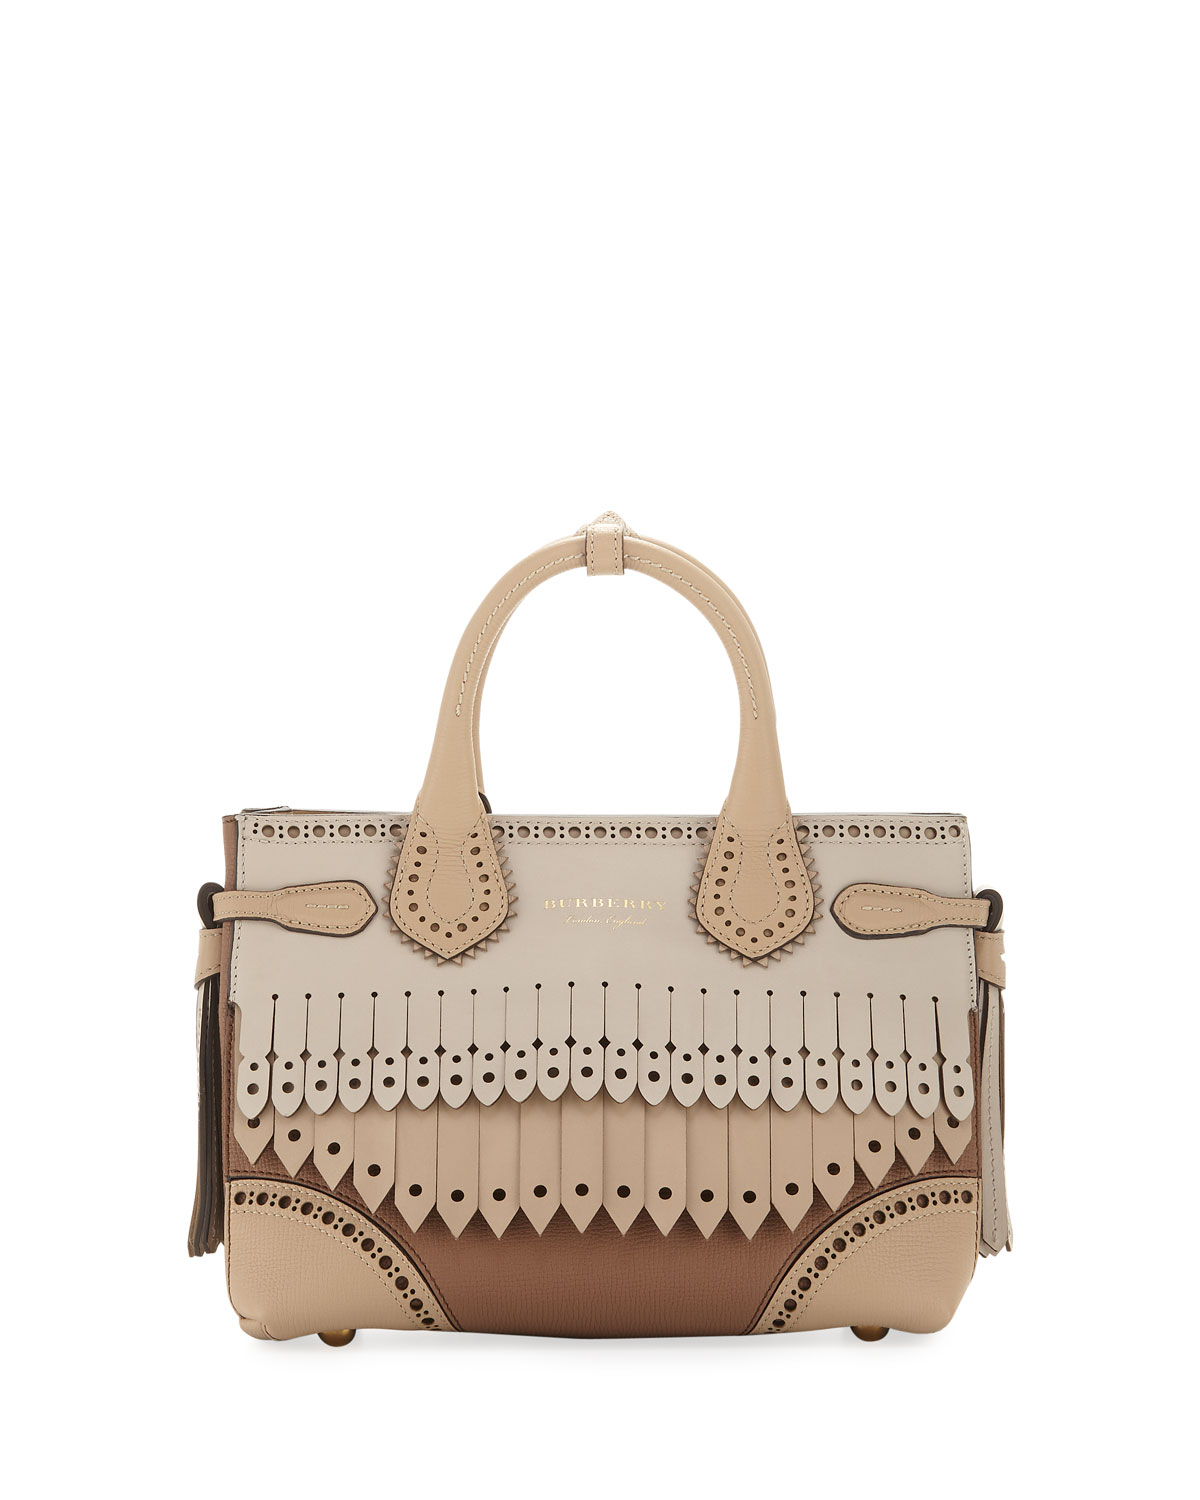 e5a0a9ce0c14 Burberry Banner Small Broguing Fringe Tote Bag